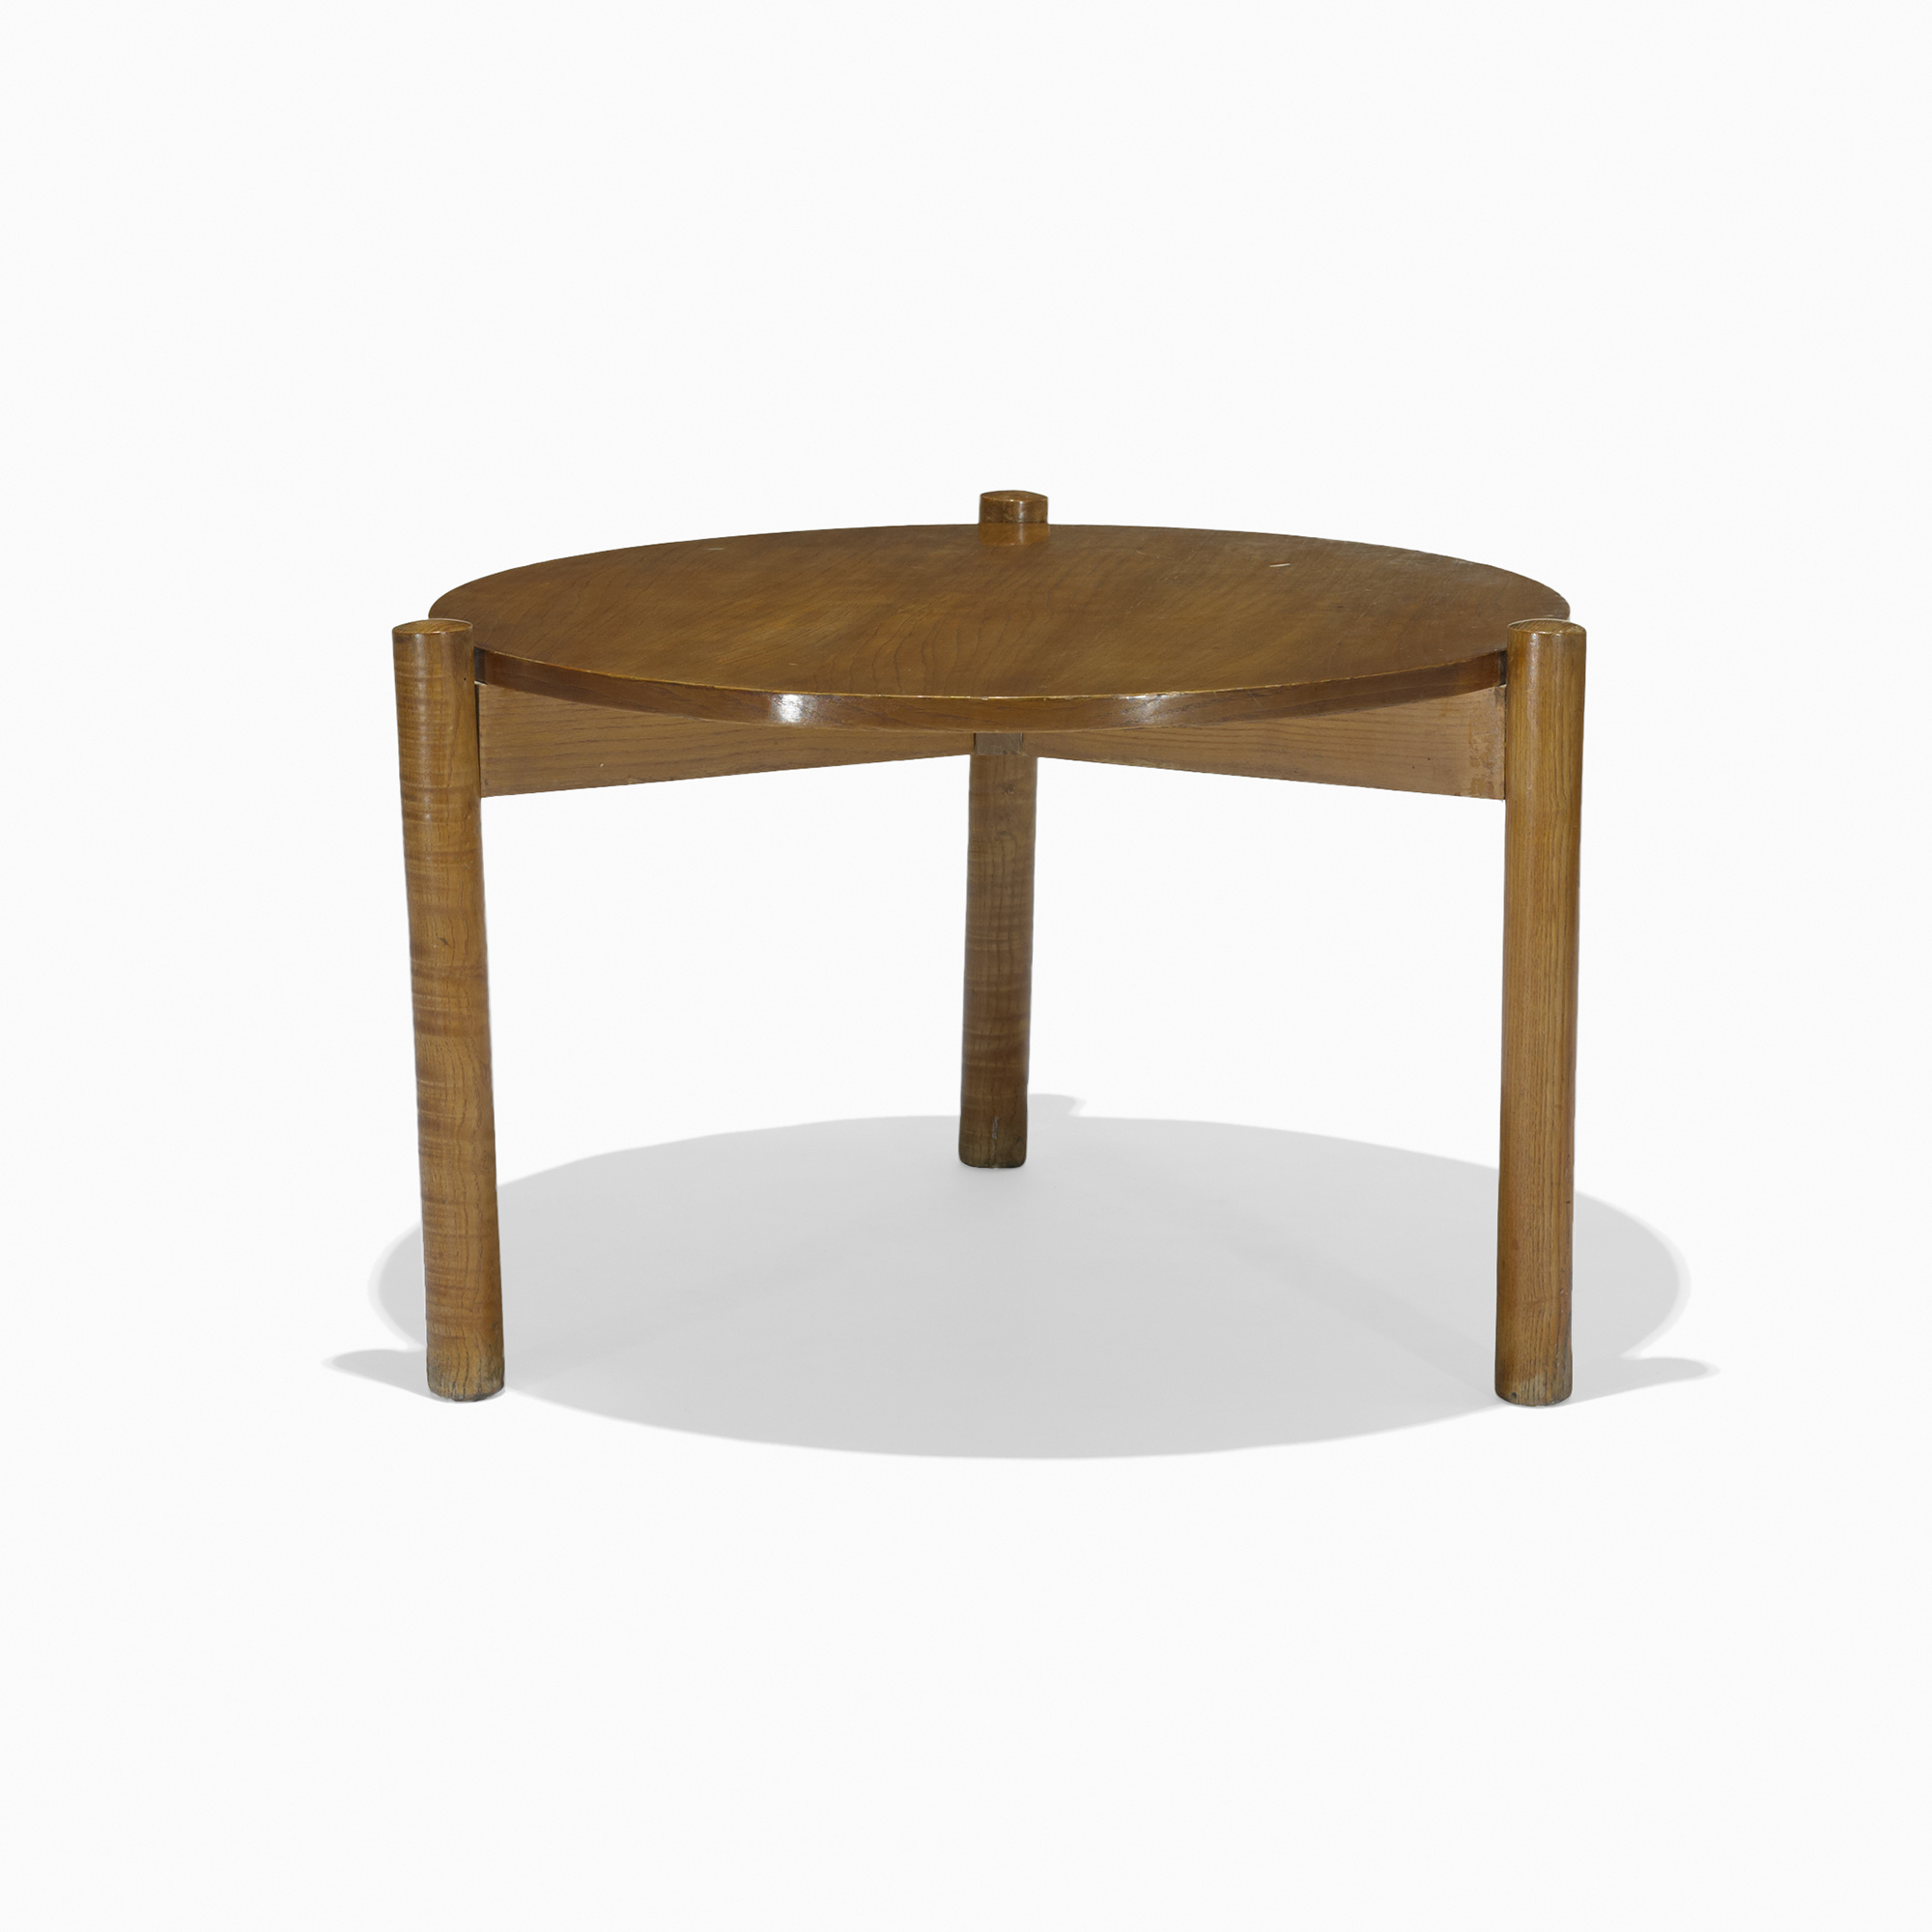 Astonishing 207 Charlotte Perriand Coffee Table Modern Design 18 Ocoug Best Dining Table And Chair Ideas Images Ocougorg